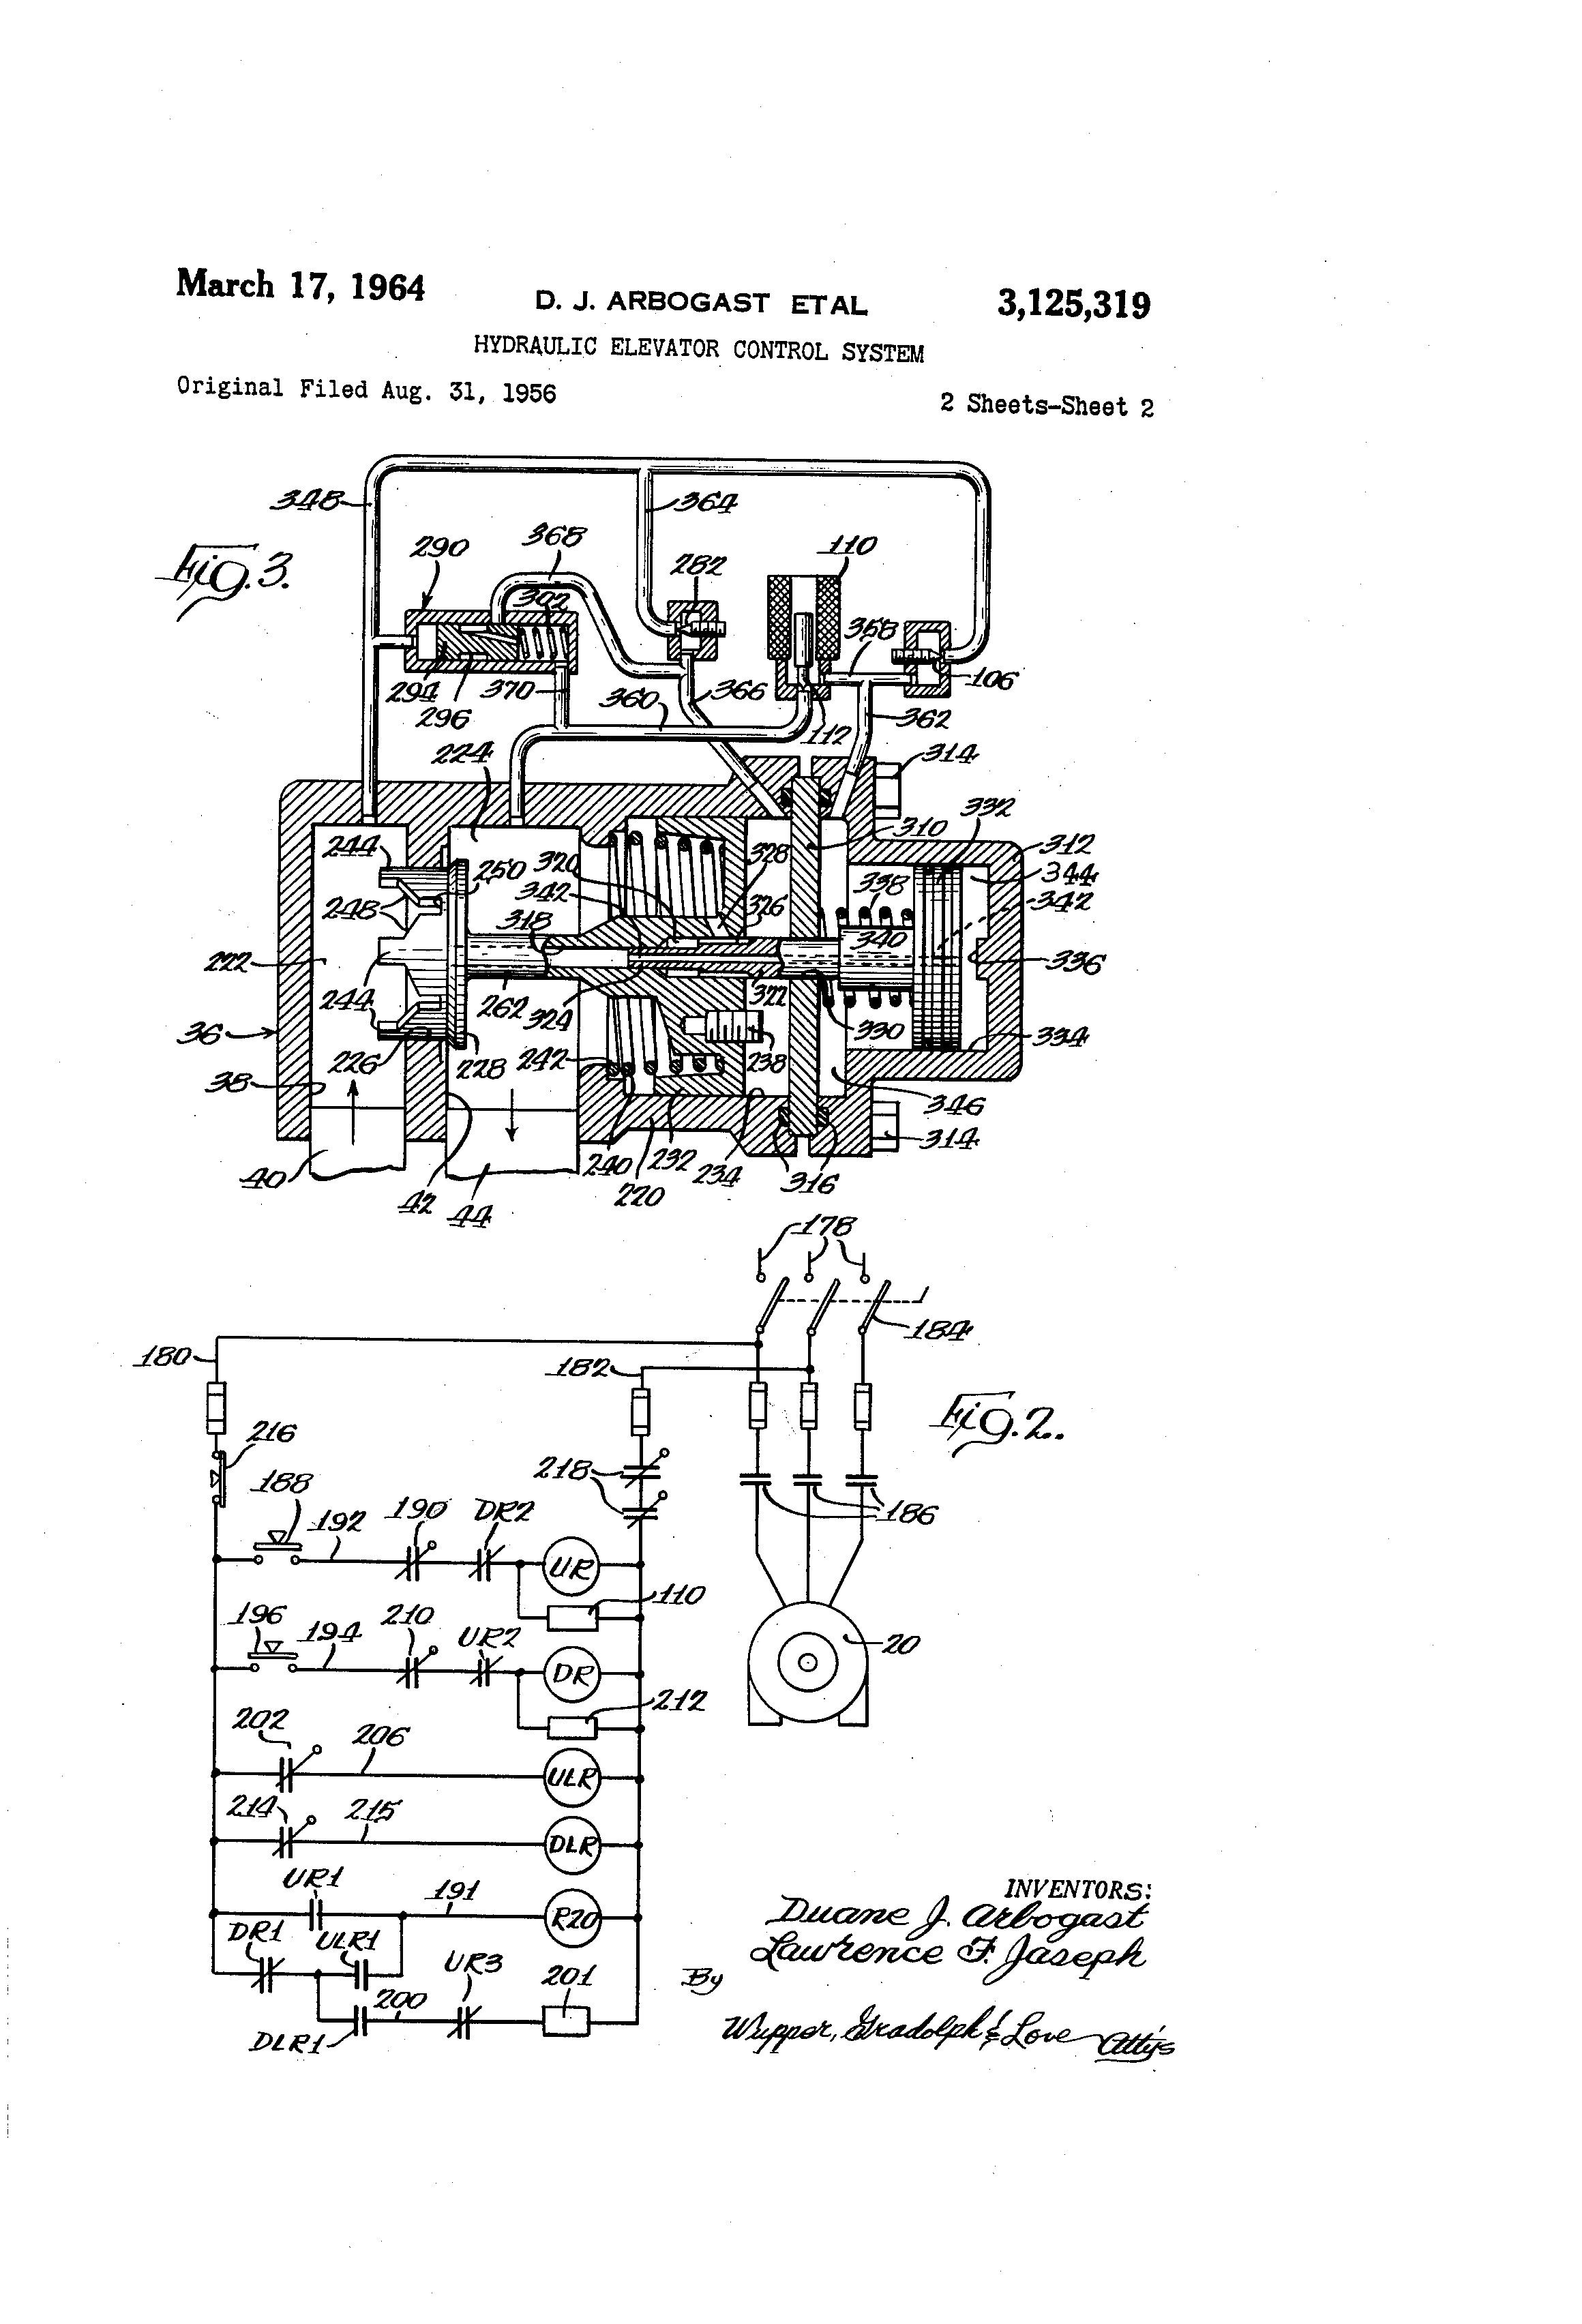 dover elevator schematics wiring library u2022 insweb co rh insweb co Otis Elevator Schematic Diagram How Elevators Work Diagram